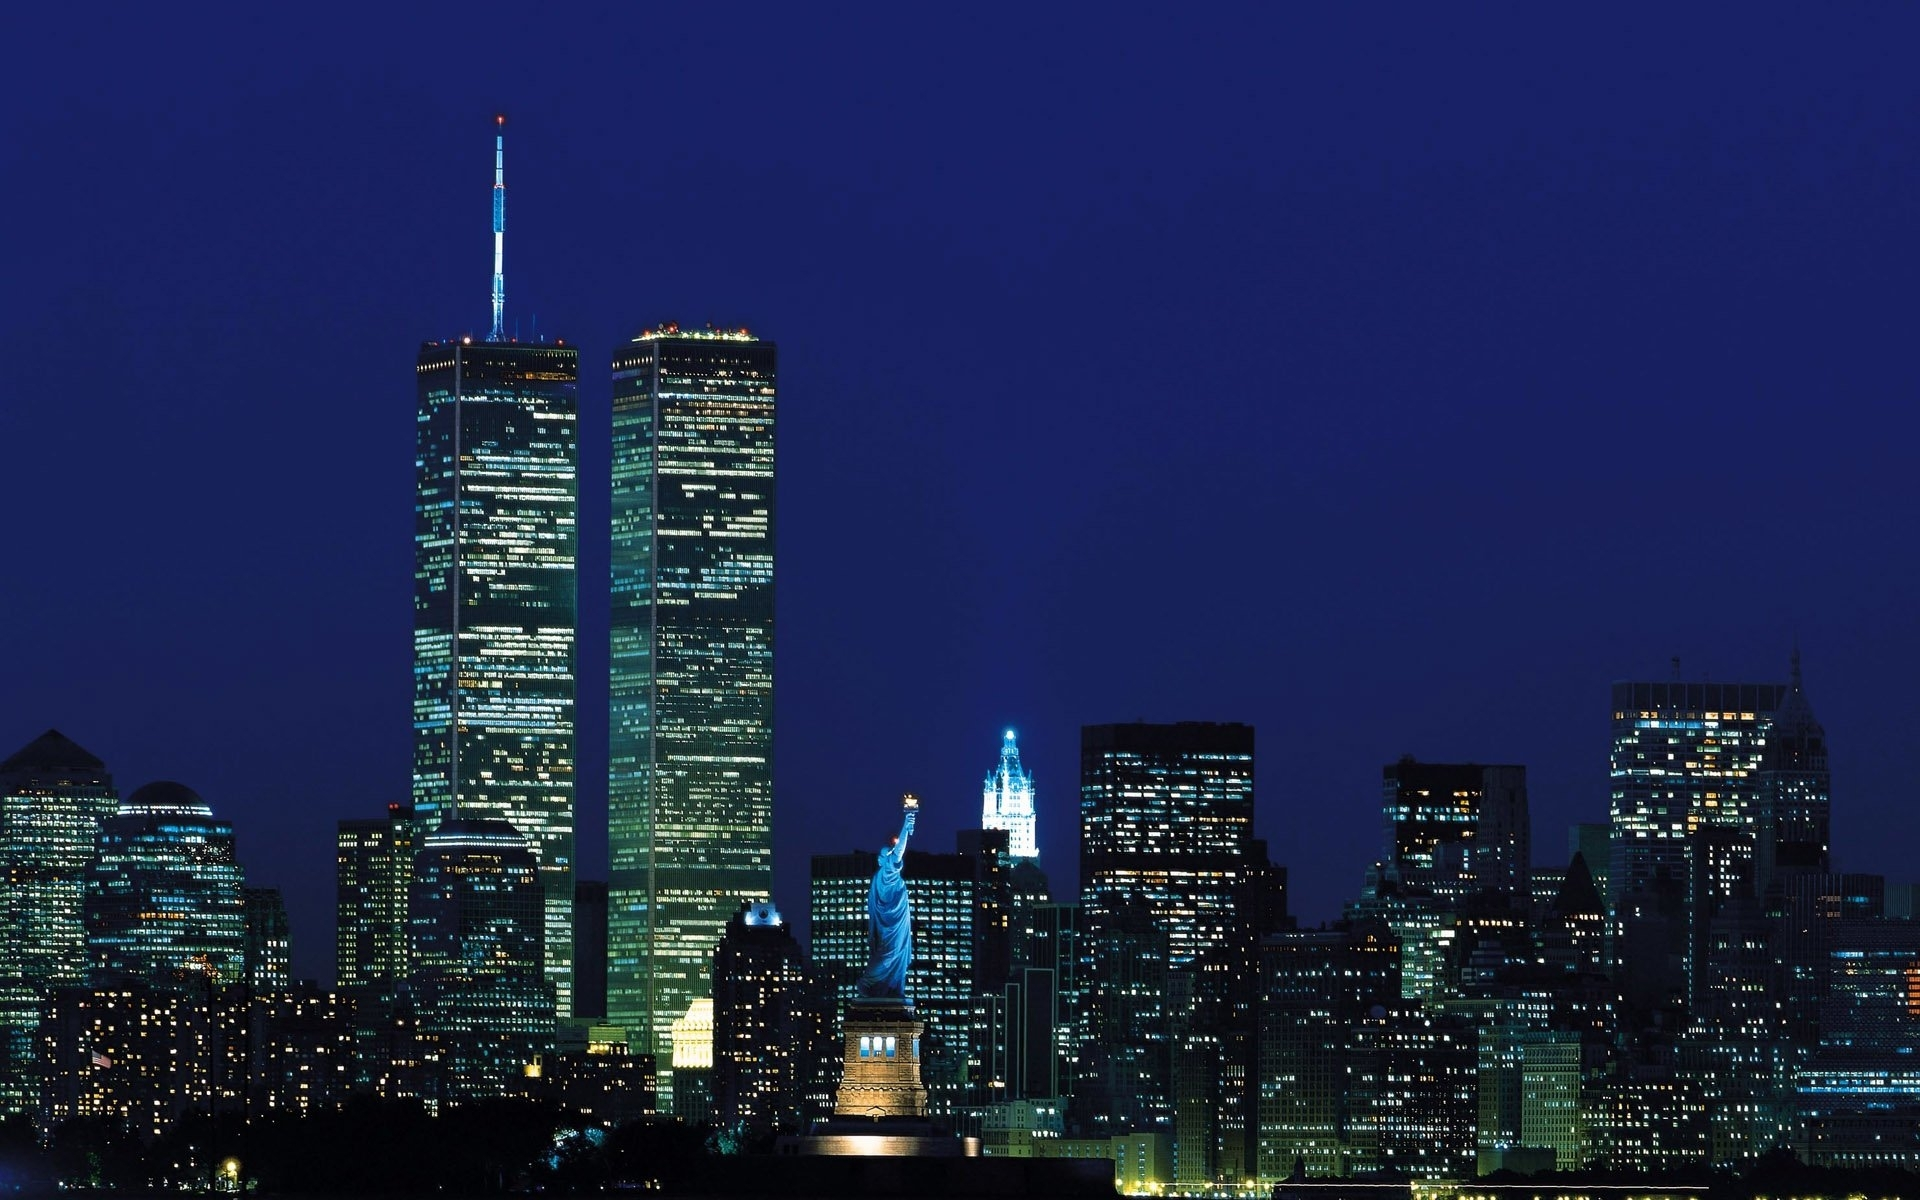 3 world trade center hd wallpapers | background images - wallpaper abyss